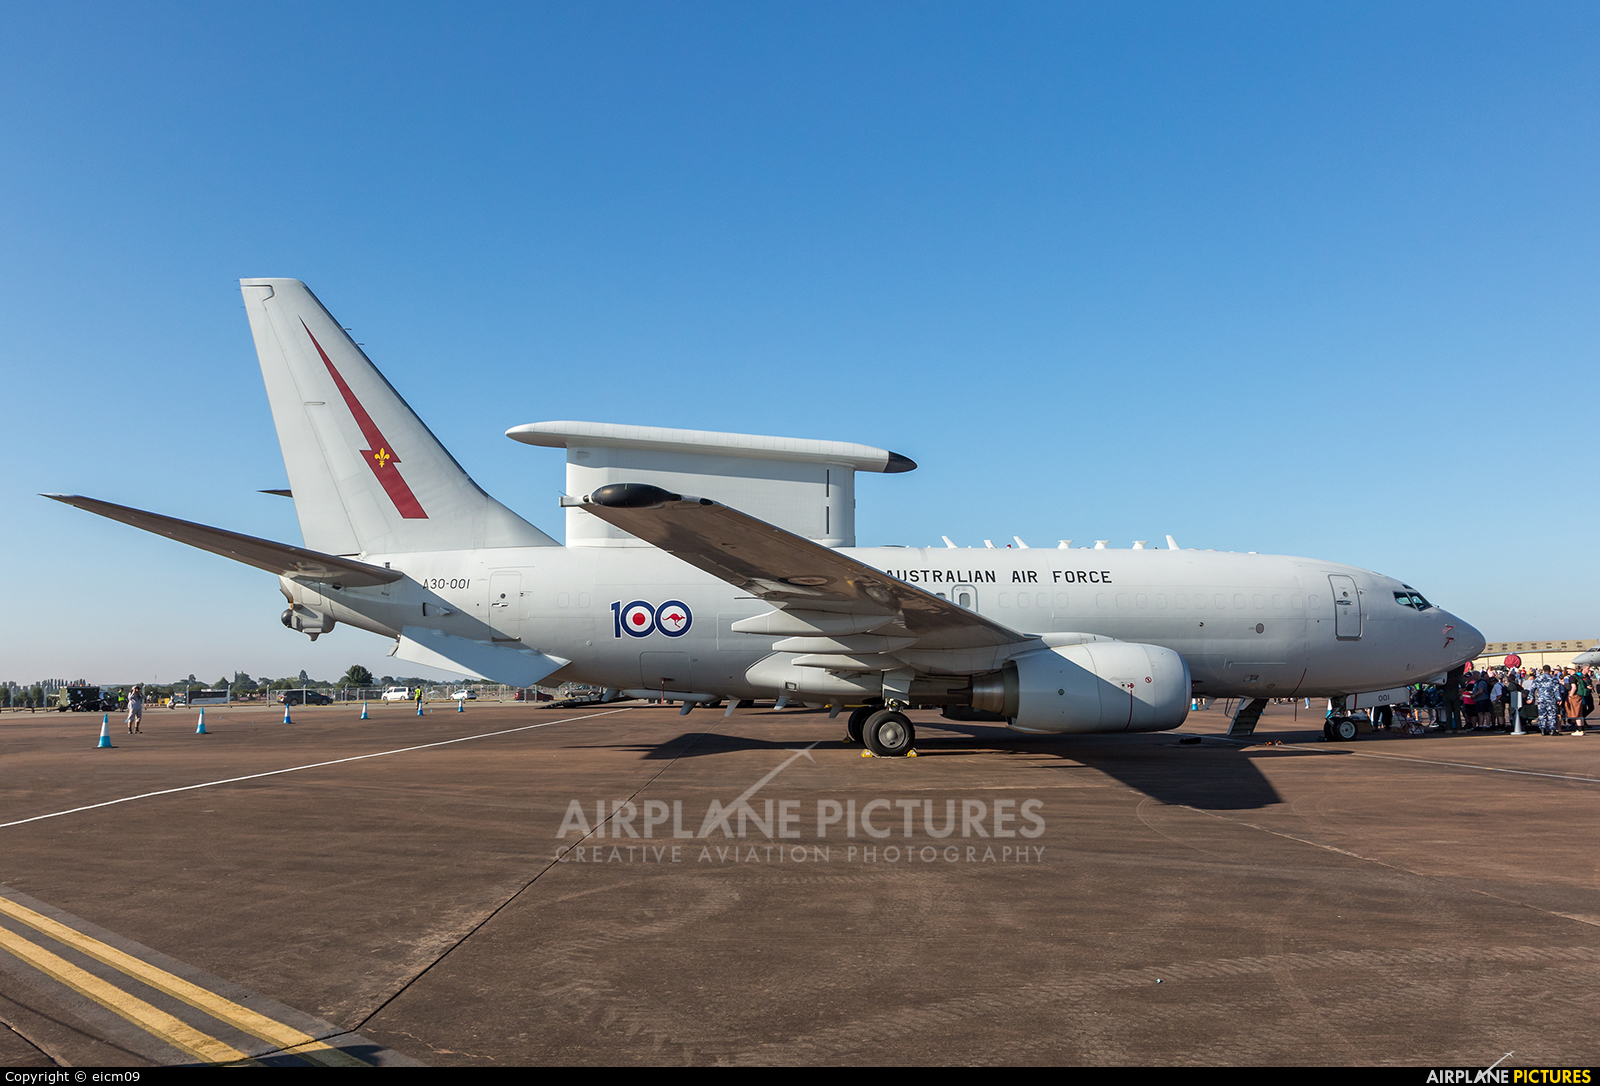 Australia - Air Force A30-001 aircraft at Fairford